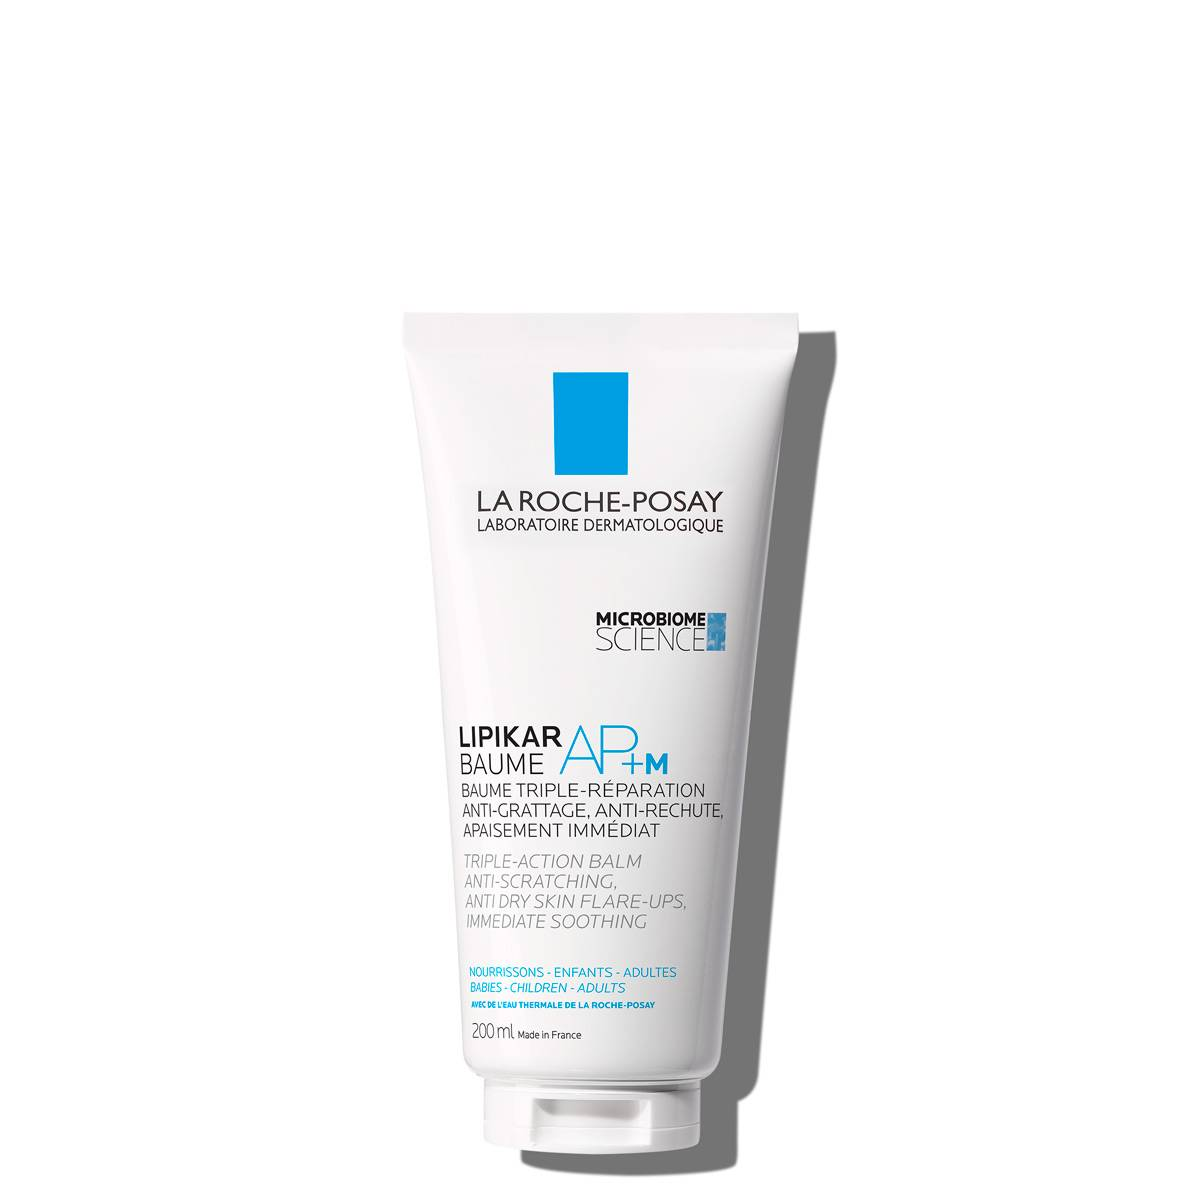 La Roche Posay Body Care Lipikar Baume APM 200ml Lipid Replenishing Balm AntiIrritation Scratching 0003337872418587